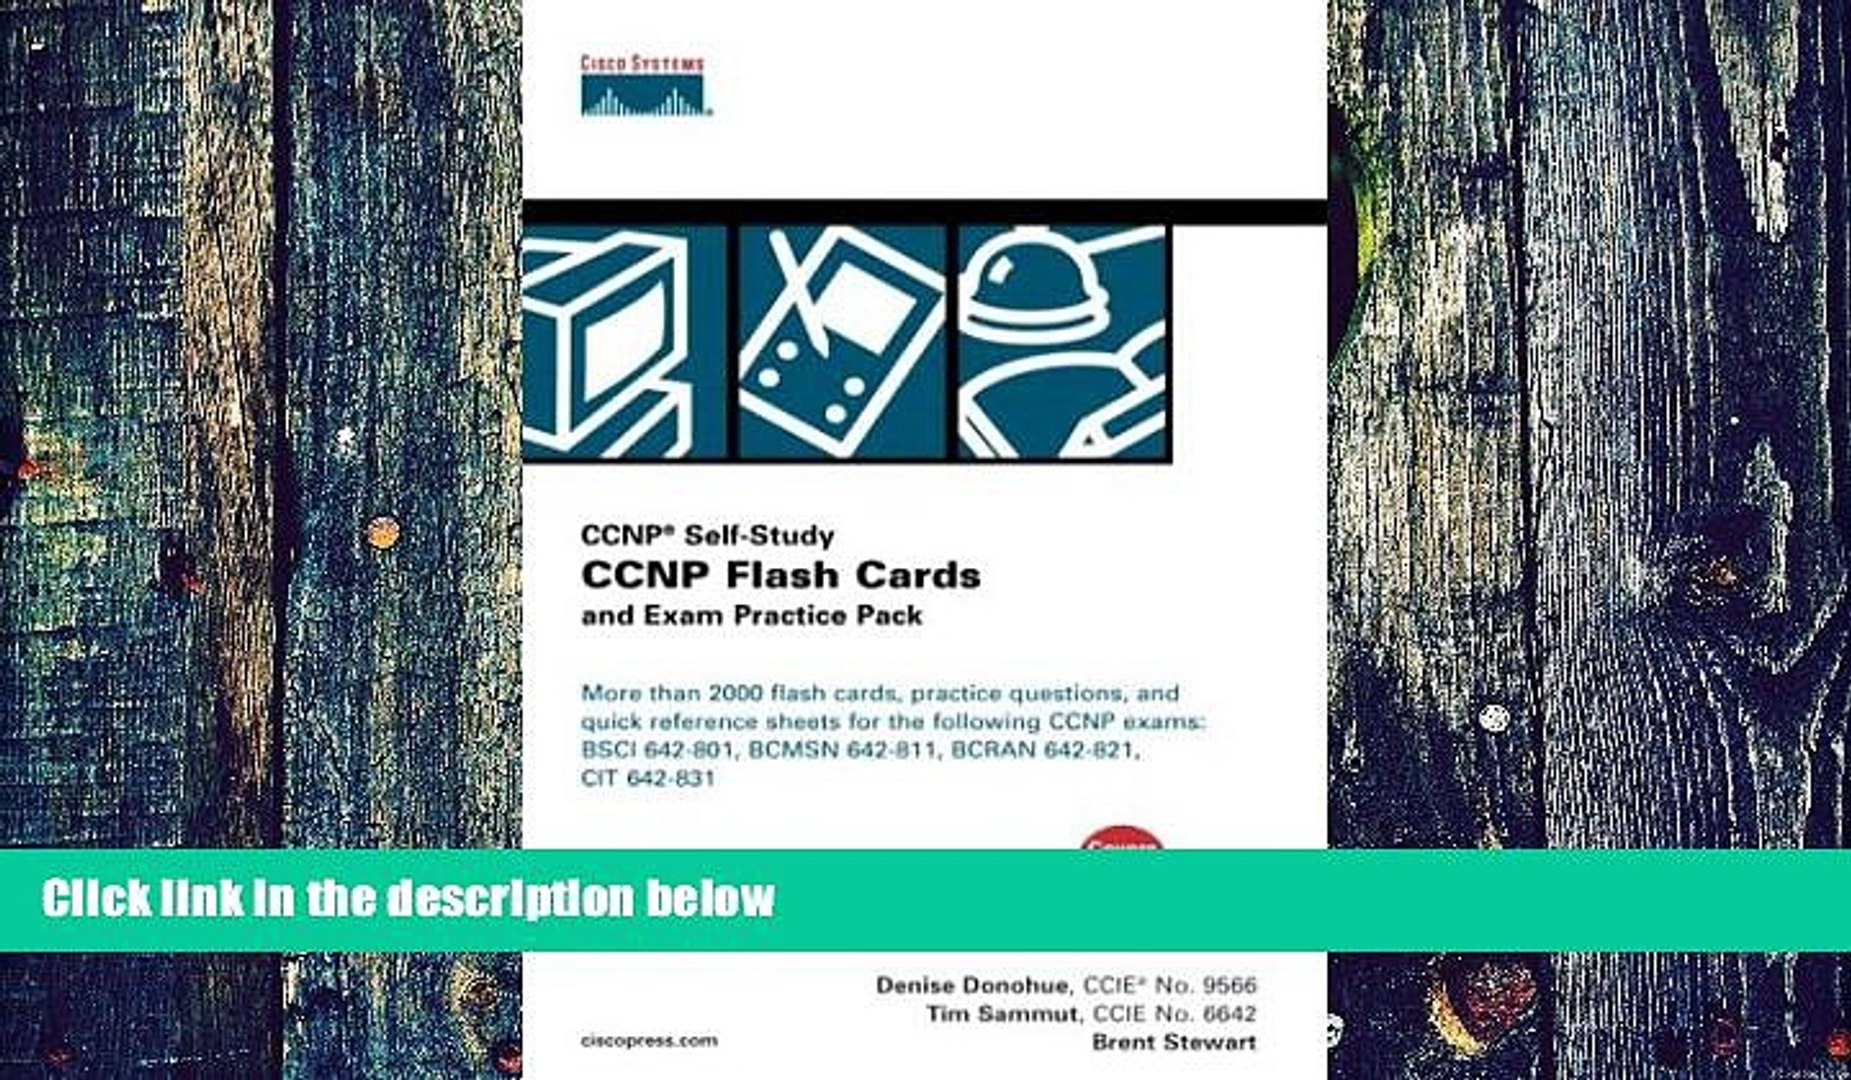 CCNP Flash Cards and Exam Practice Pack CCNP Self-Study, 642-801, 642-811, 642-821, 642-831